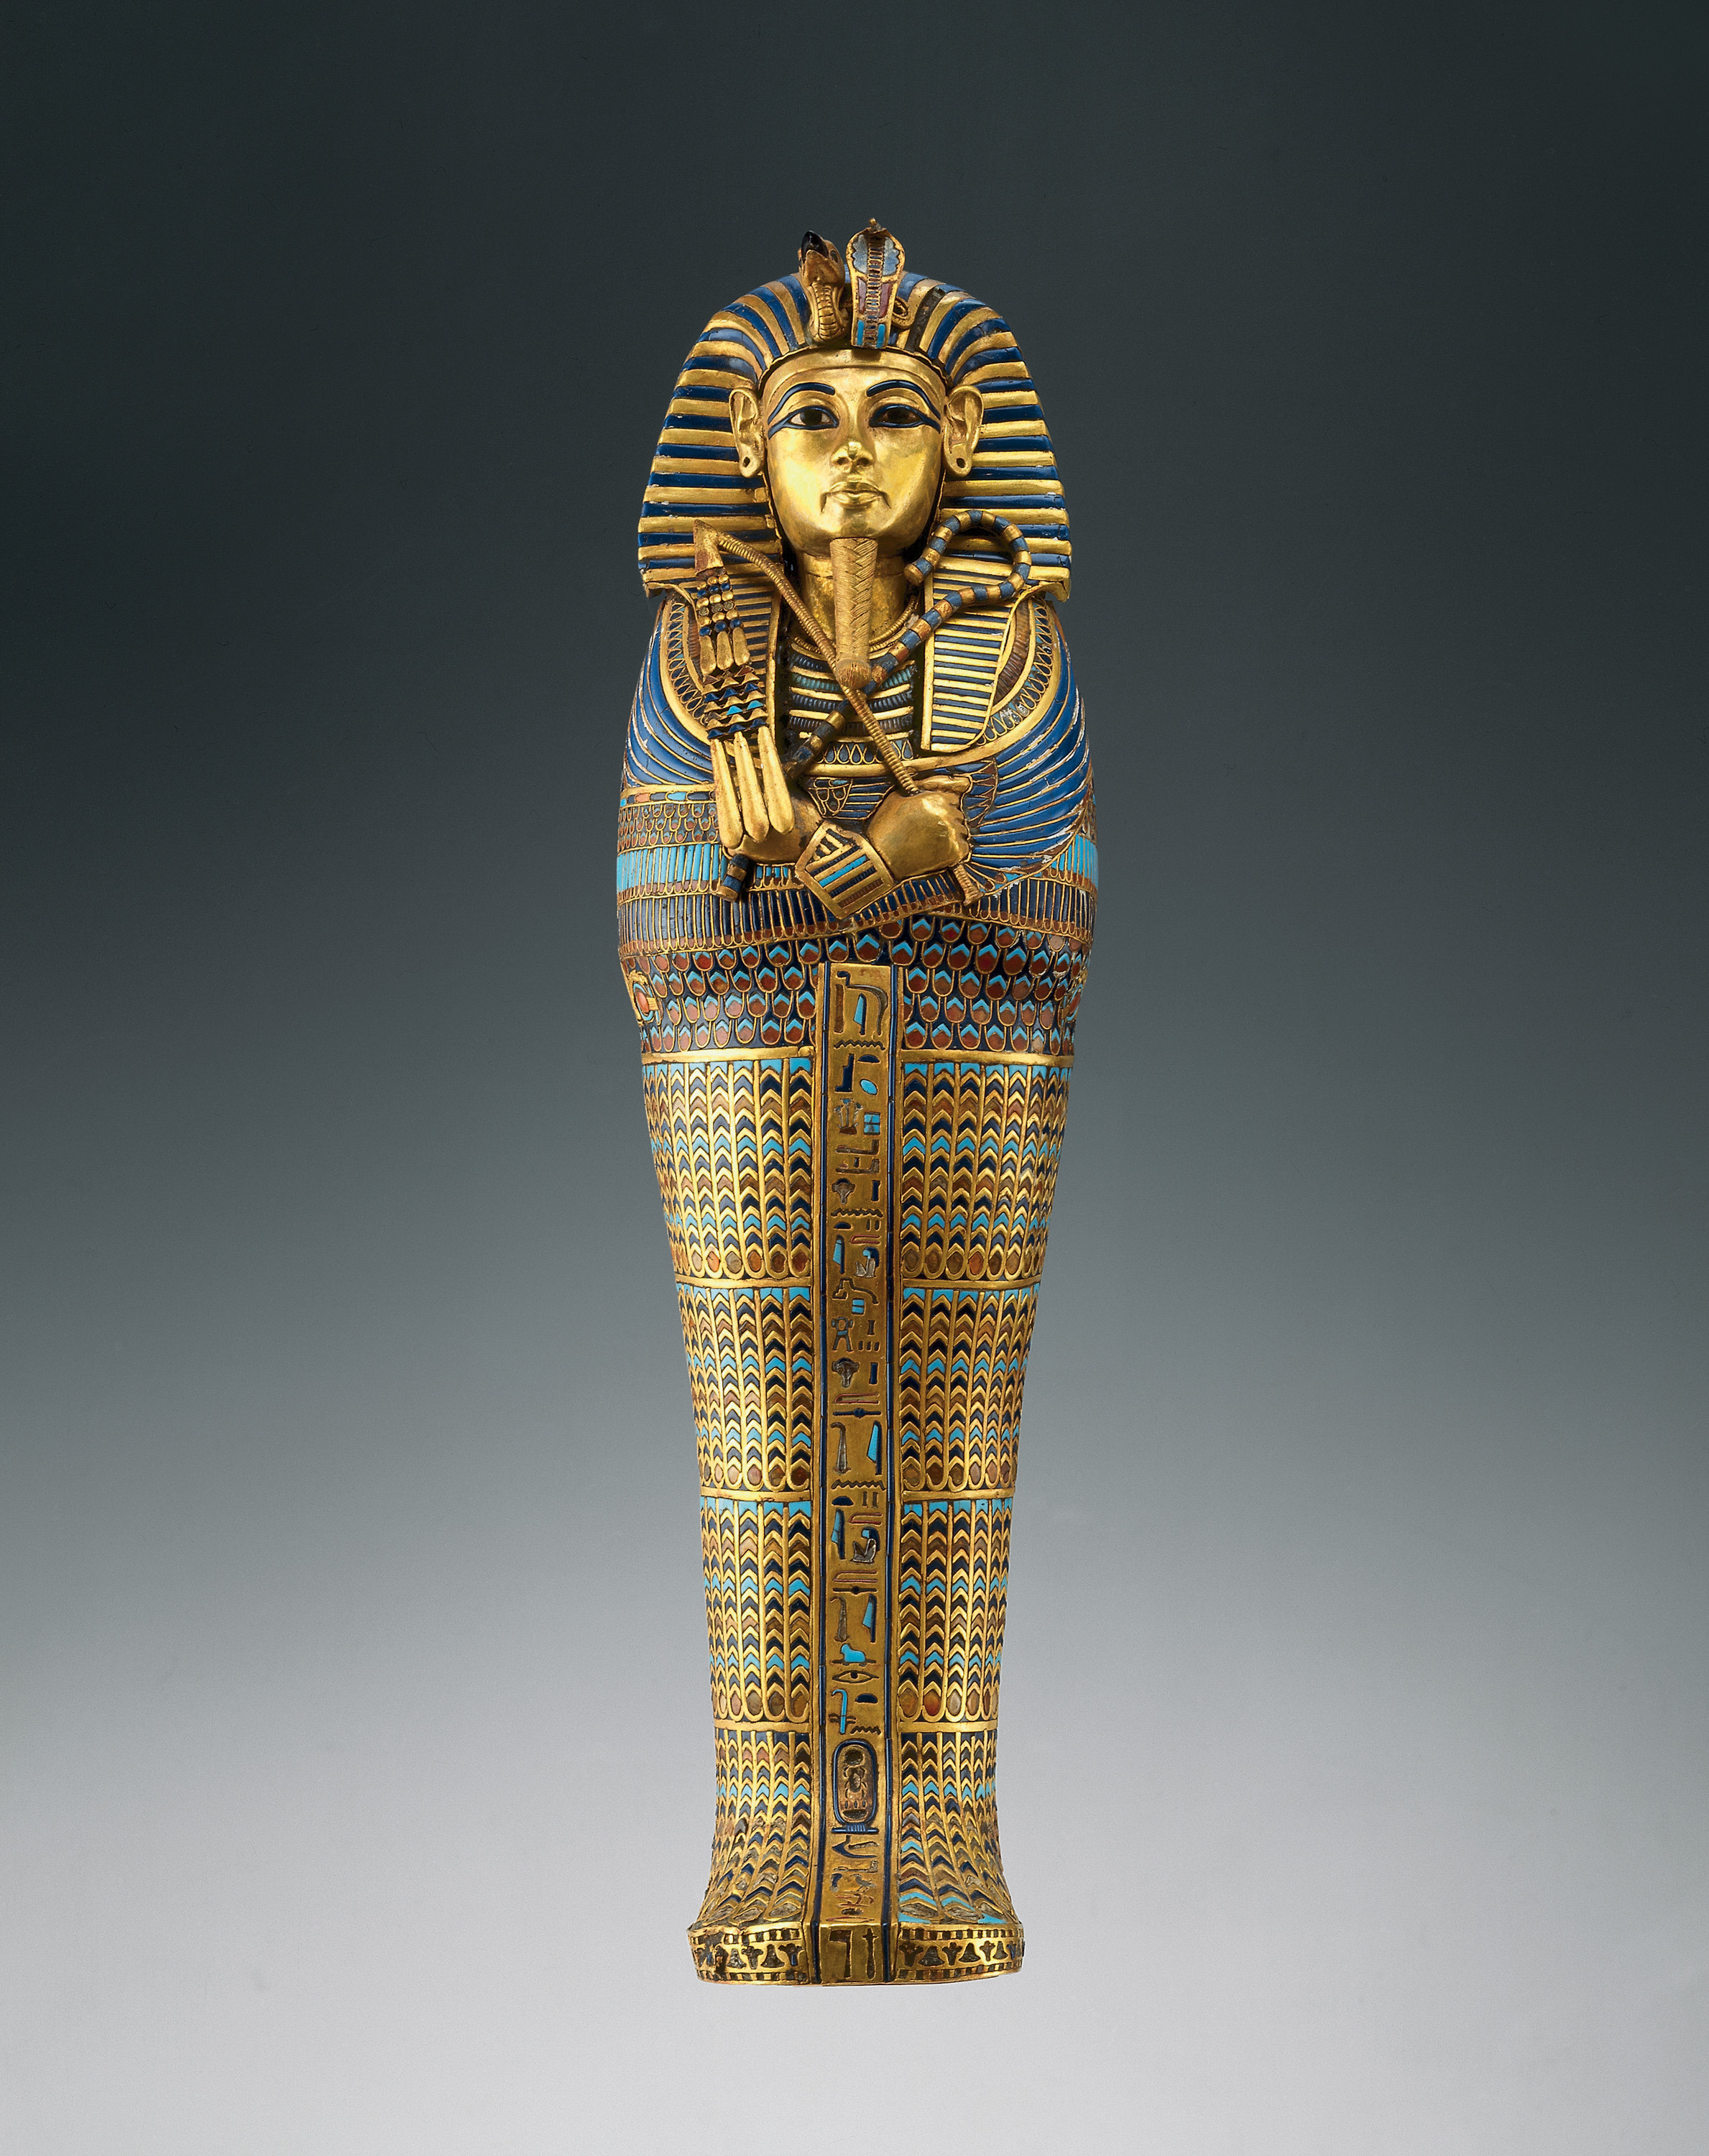 Artefact from King Tut's tomb made from meteorite, study ...